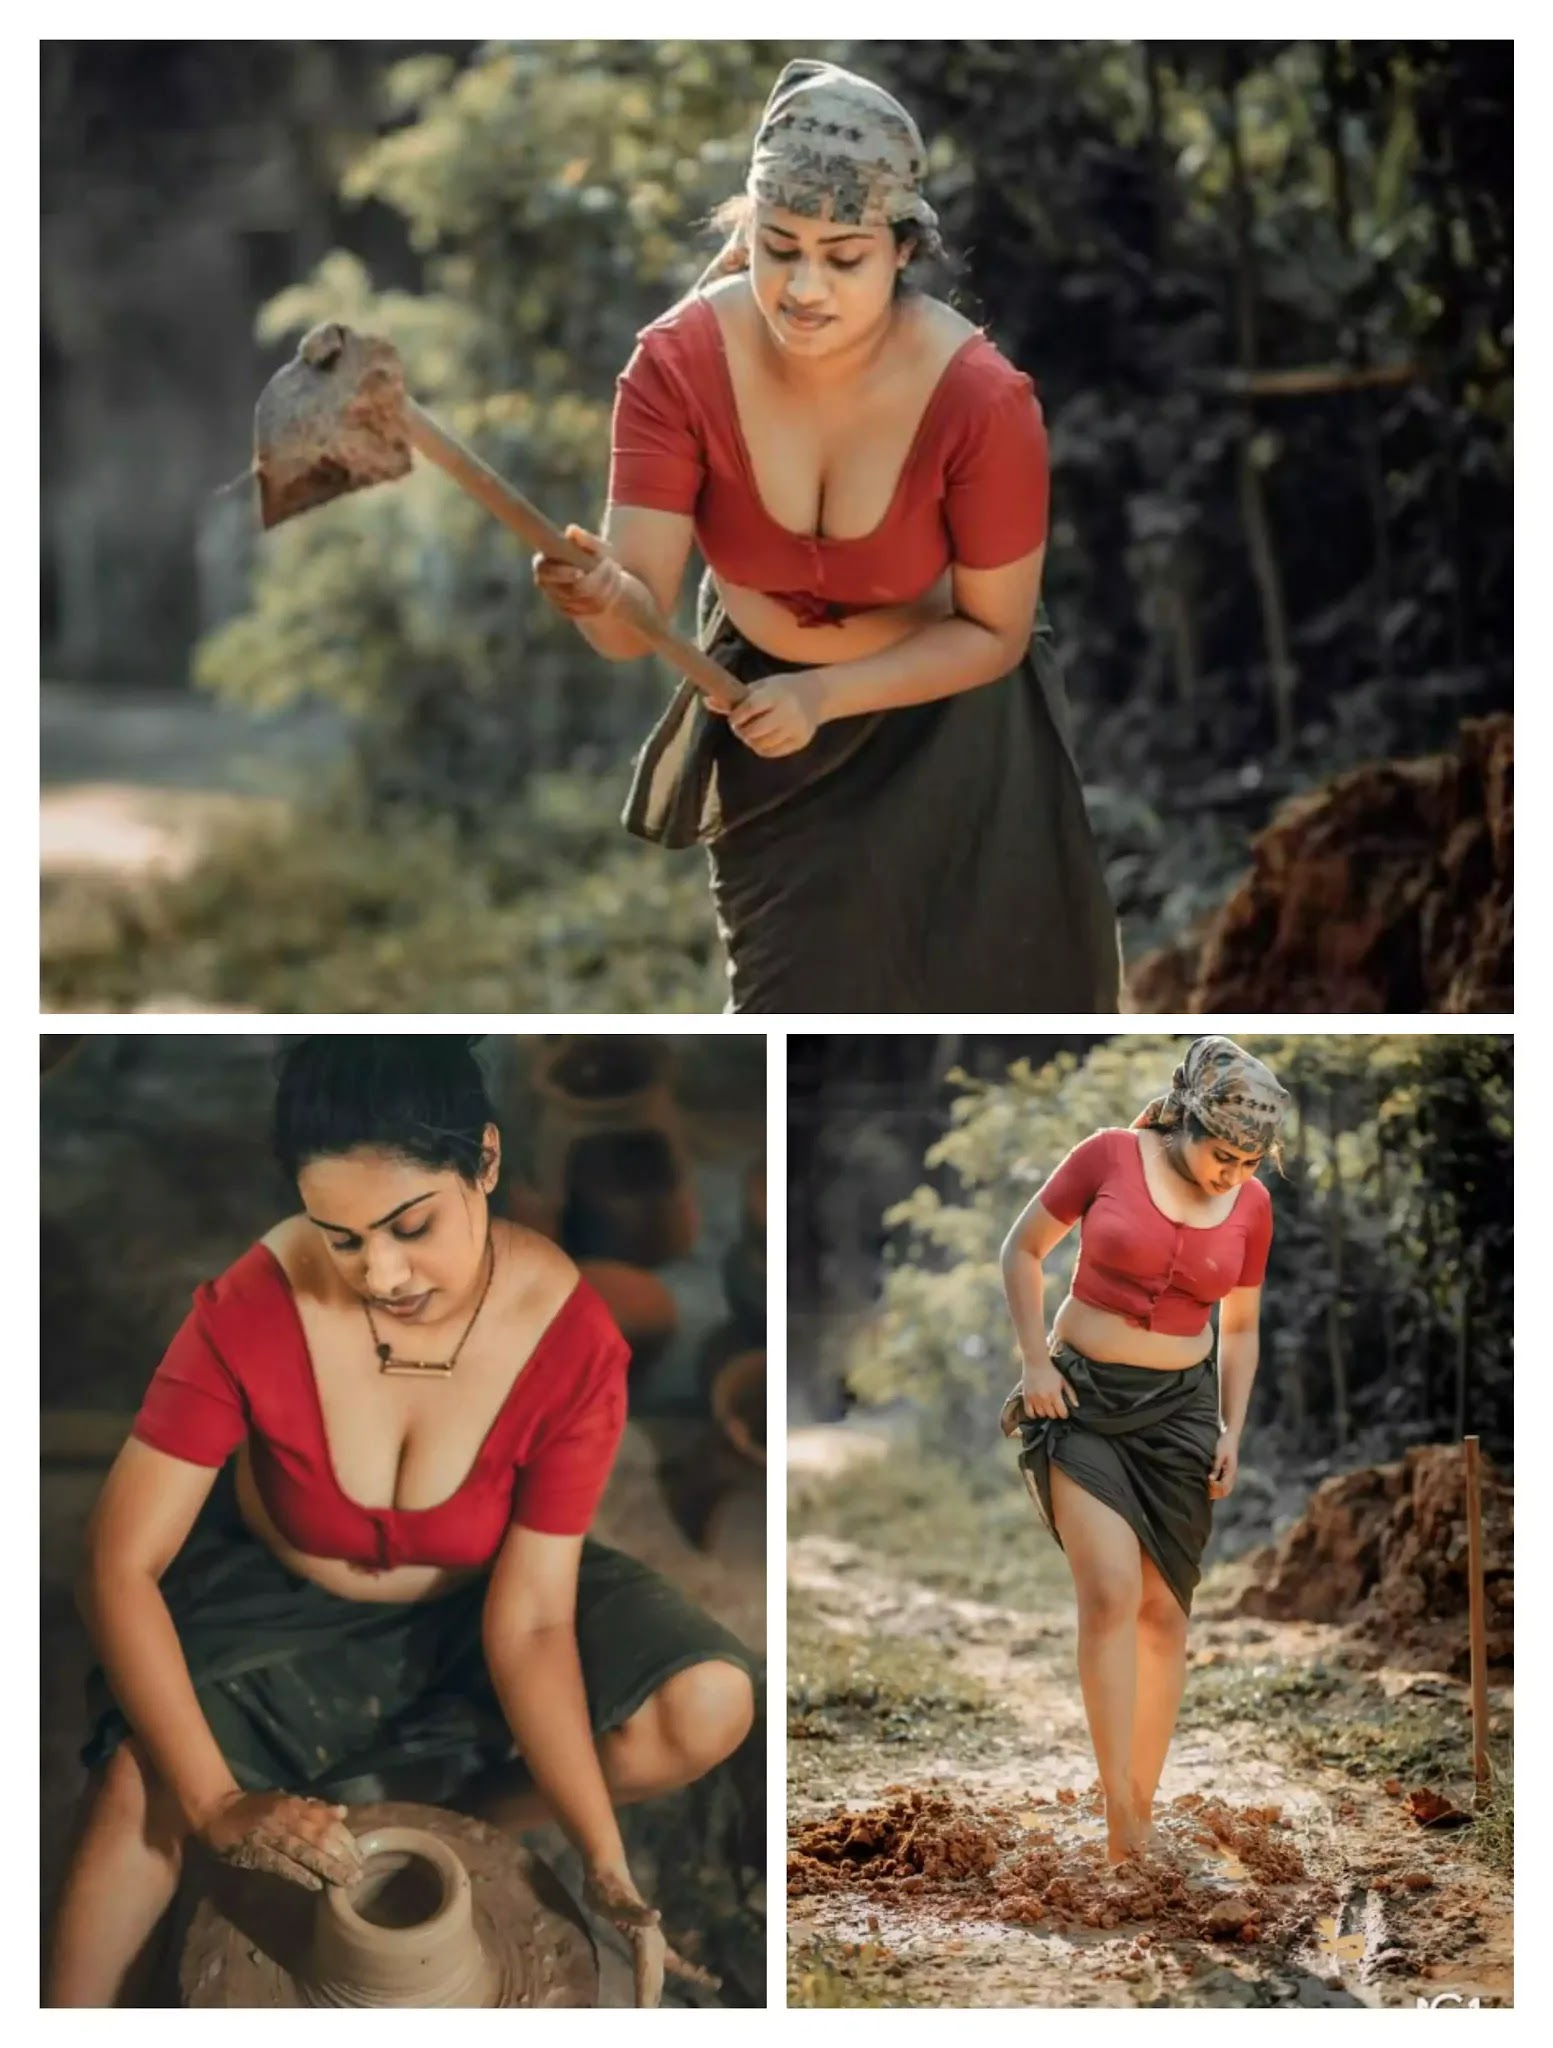 Hot village girl in red blouse with black lungi